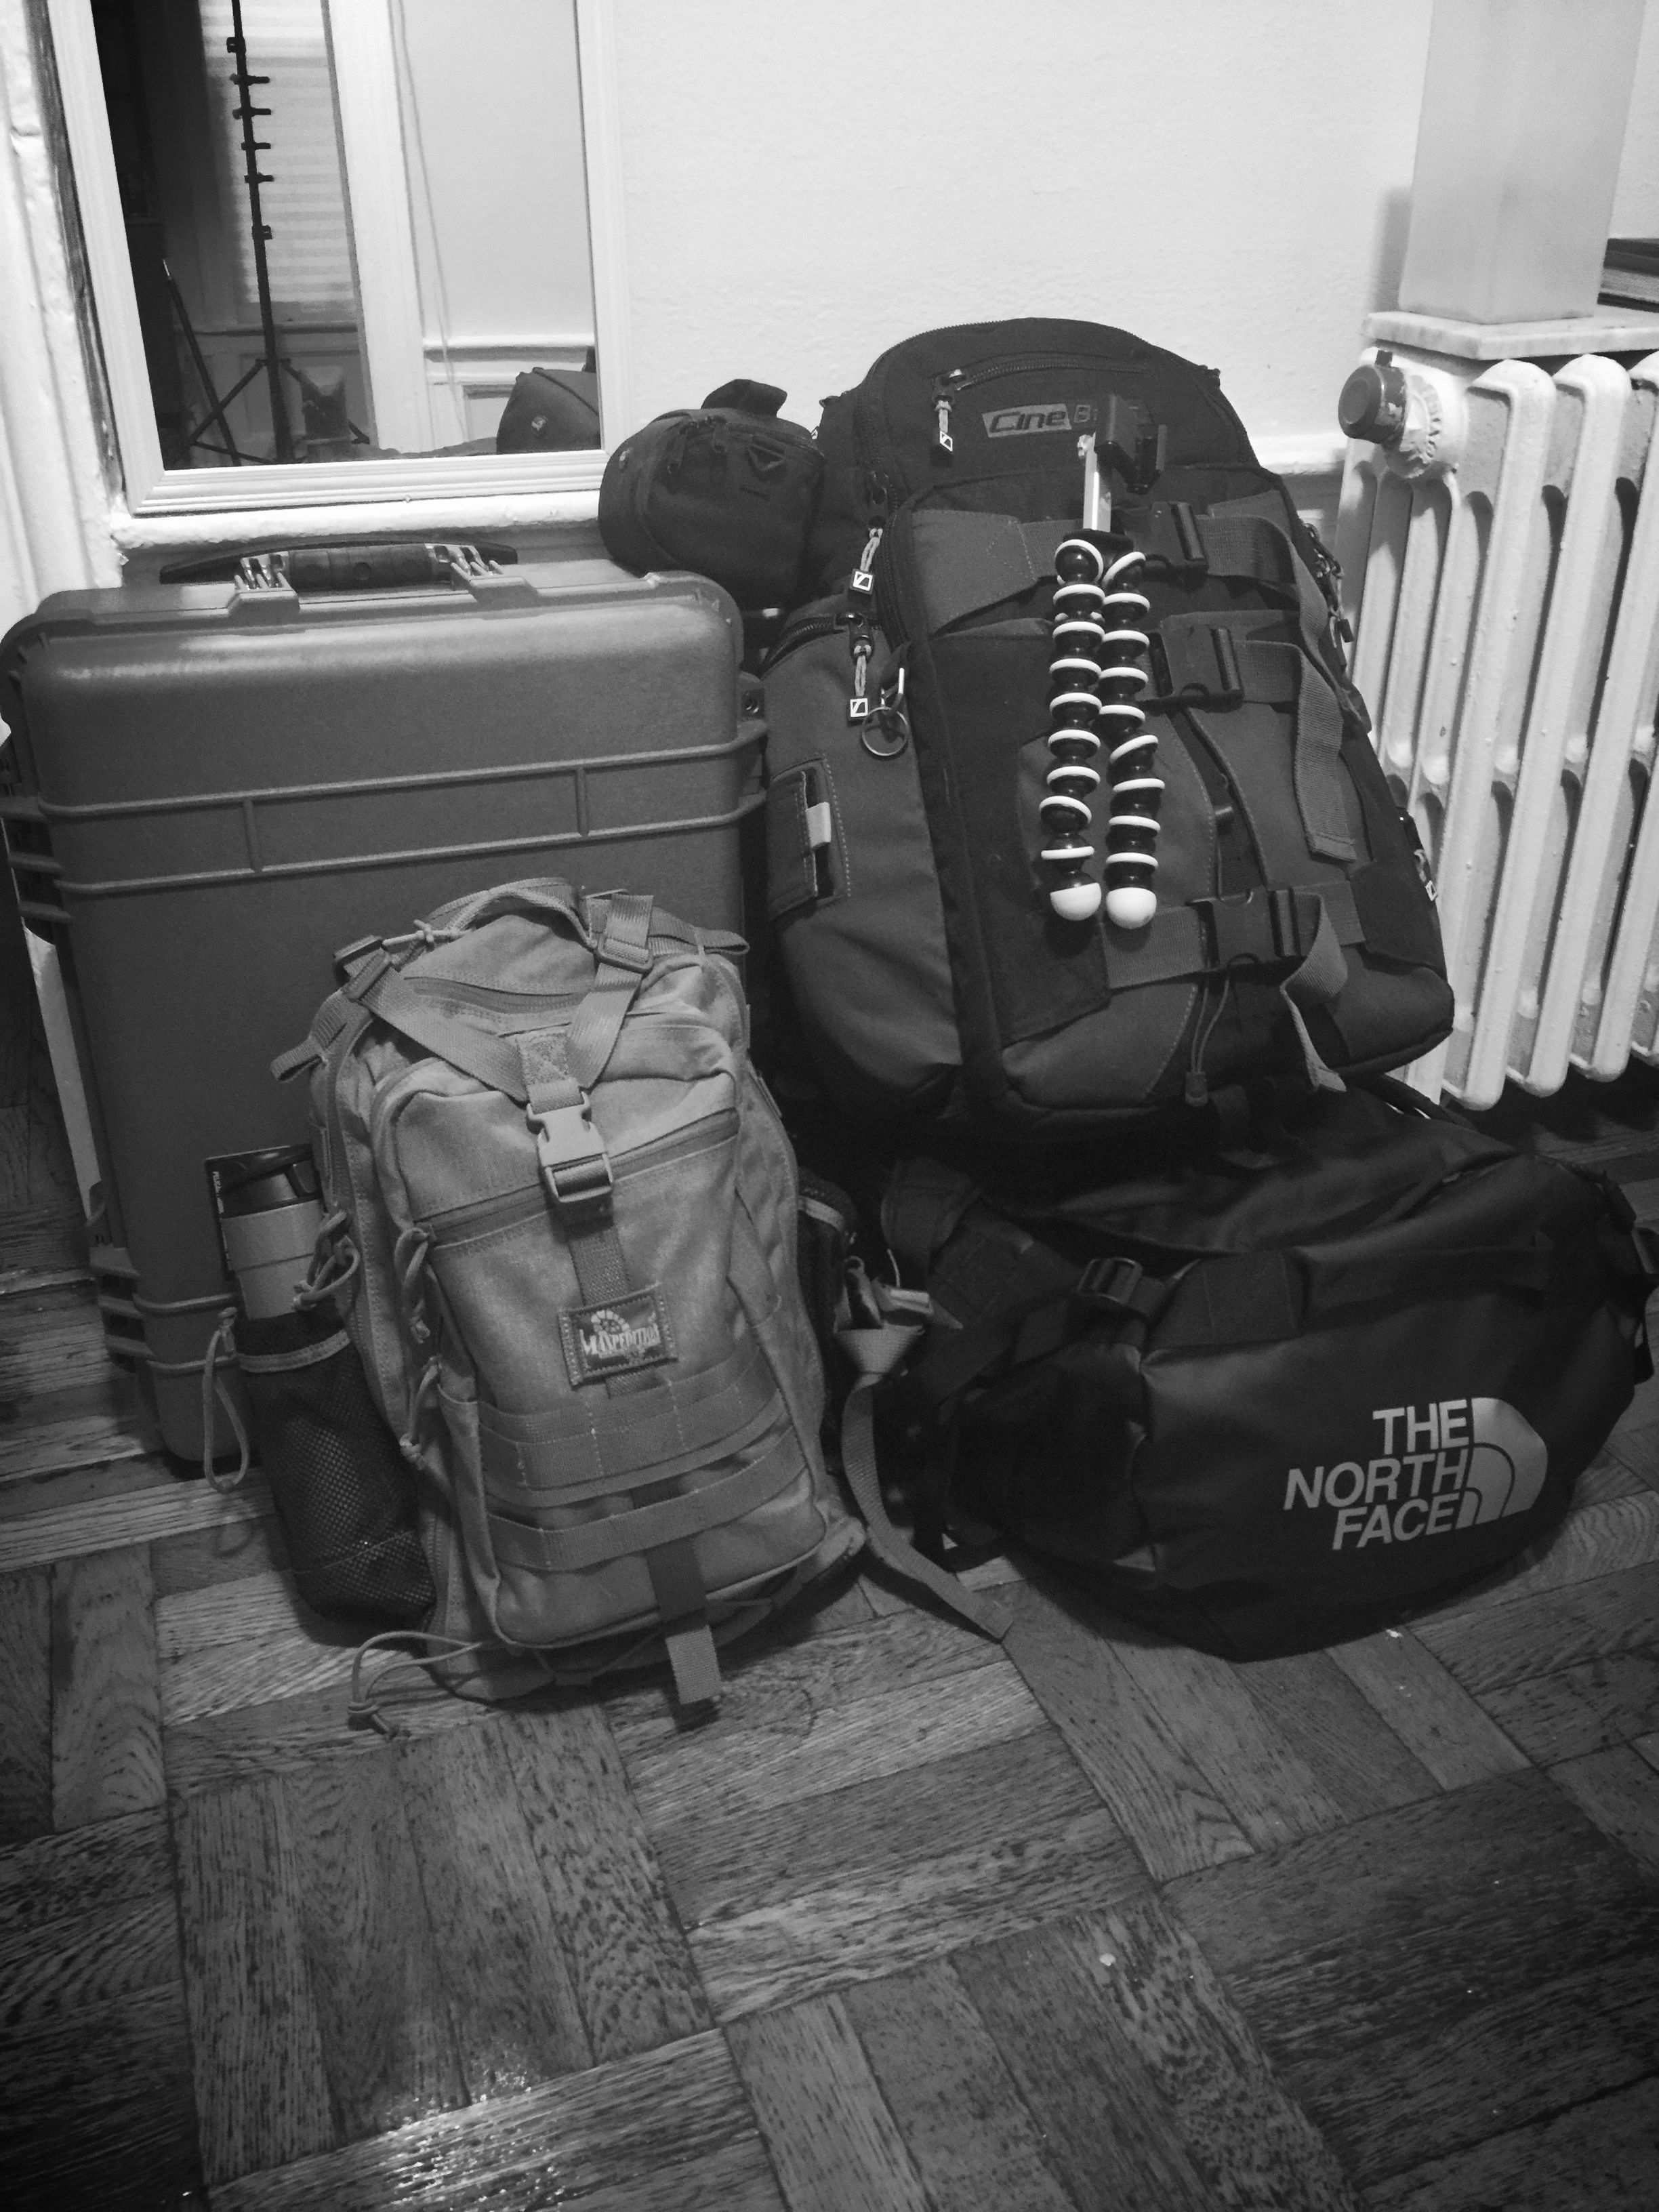 FOOD FOR THOUGHT: This is what overpacking looks like. On my last trip, 75% of this gear didn't get used. Everything that did fit into the bag on the bottom left.